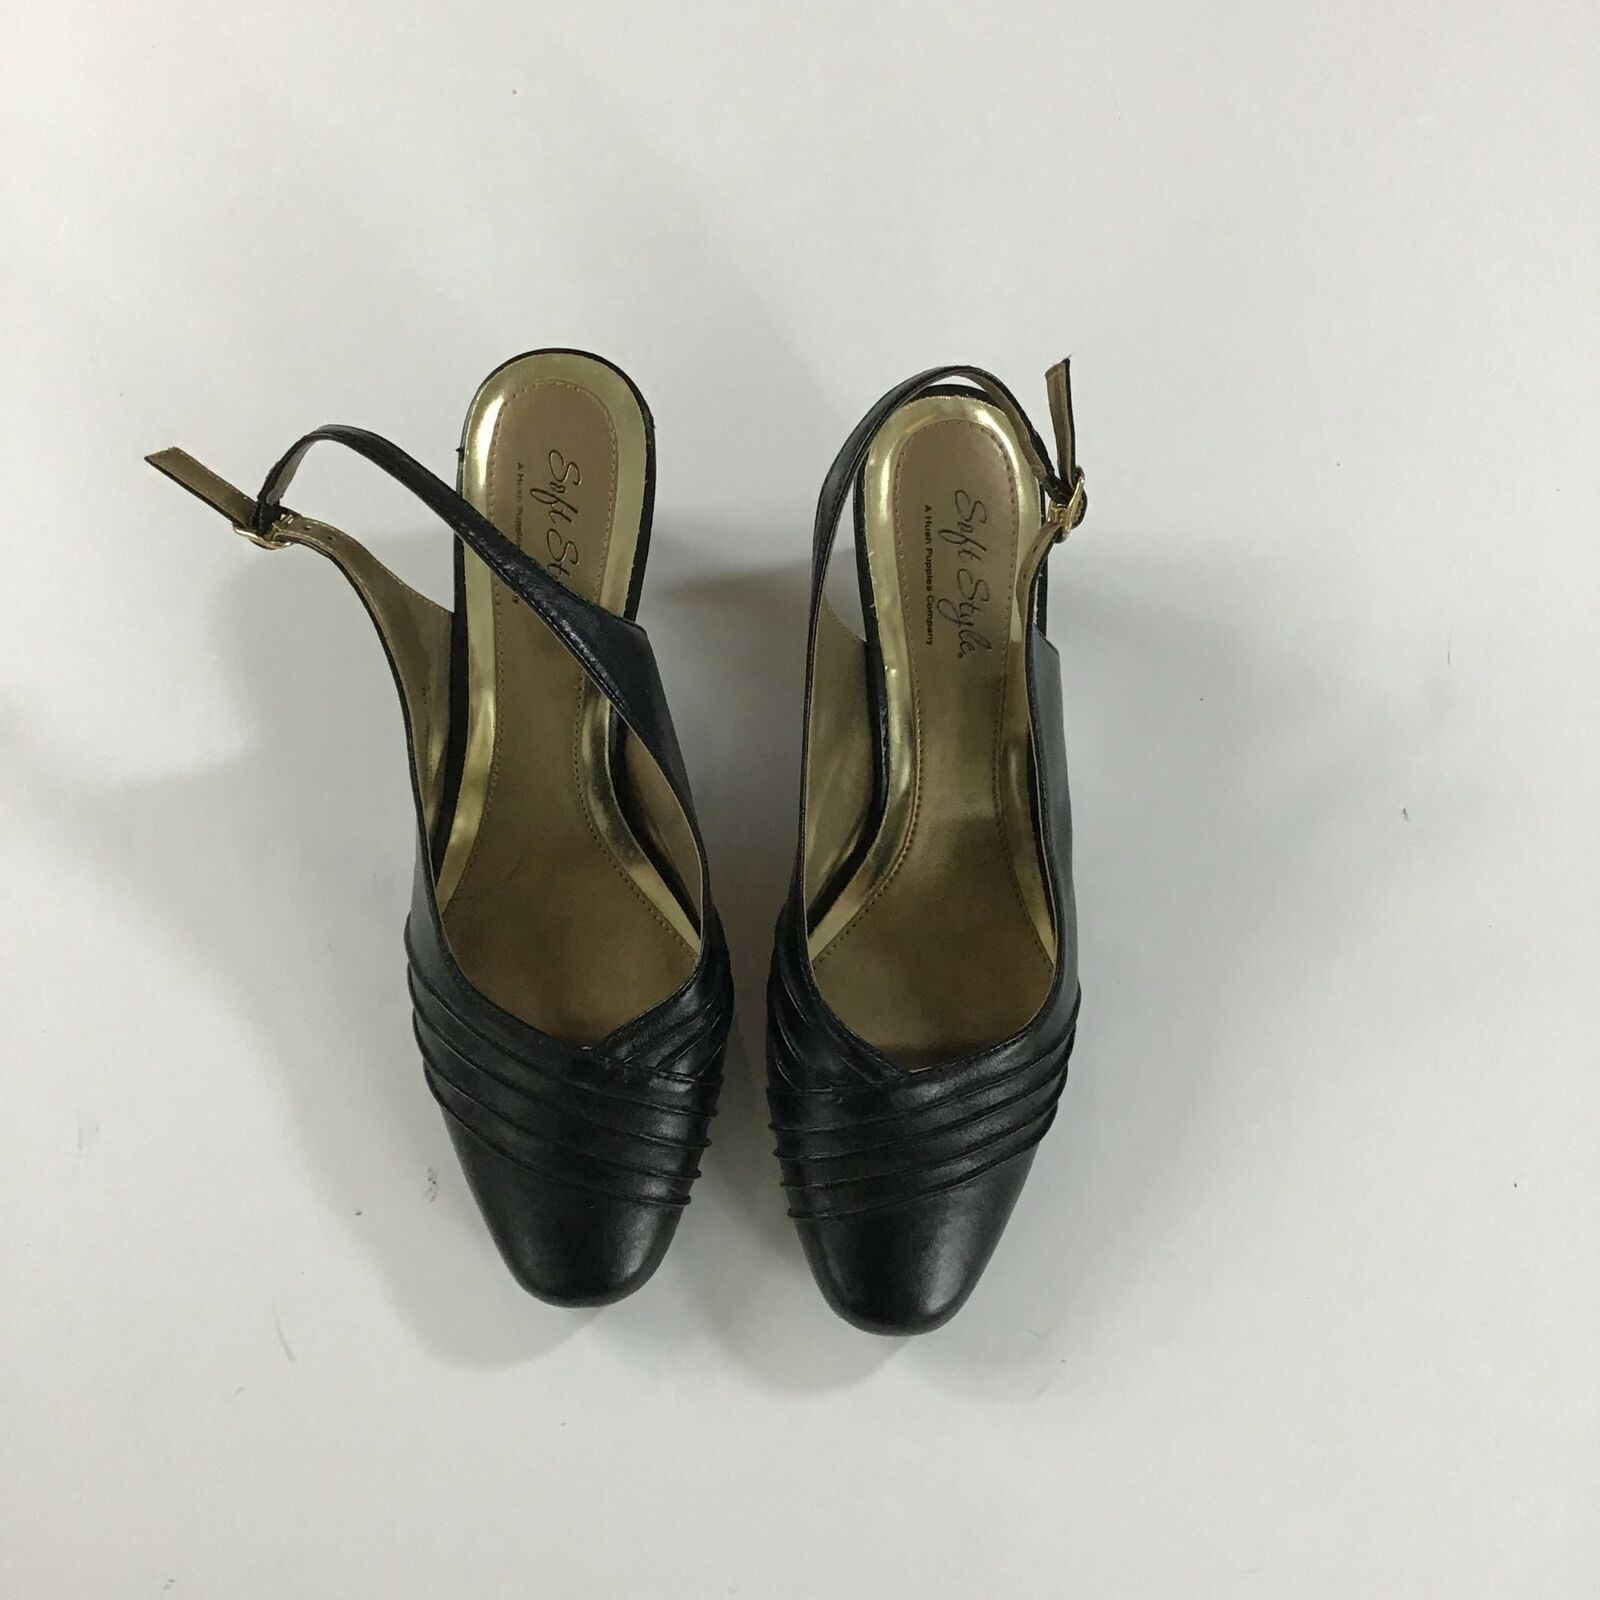 Women's Low Heel Pointed Toe Soft Style Black Shoes 8M